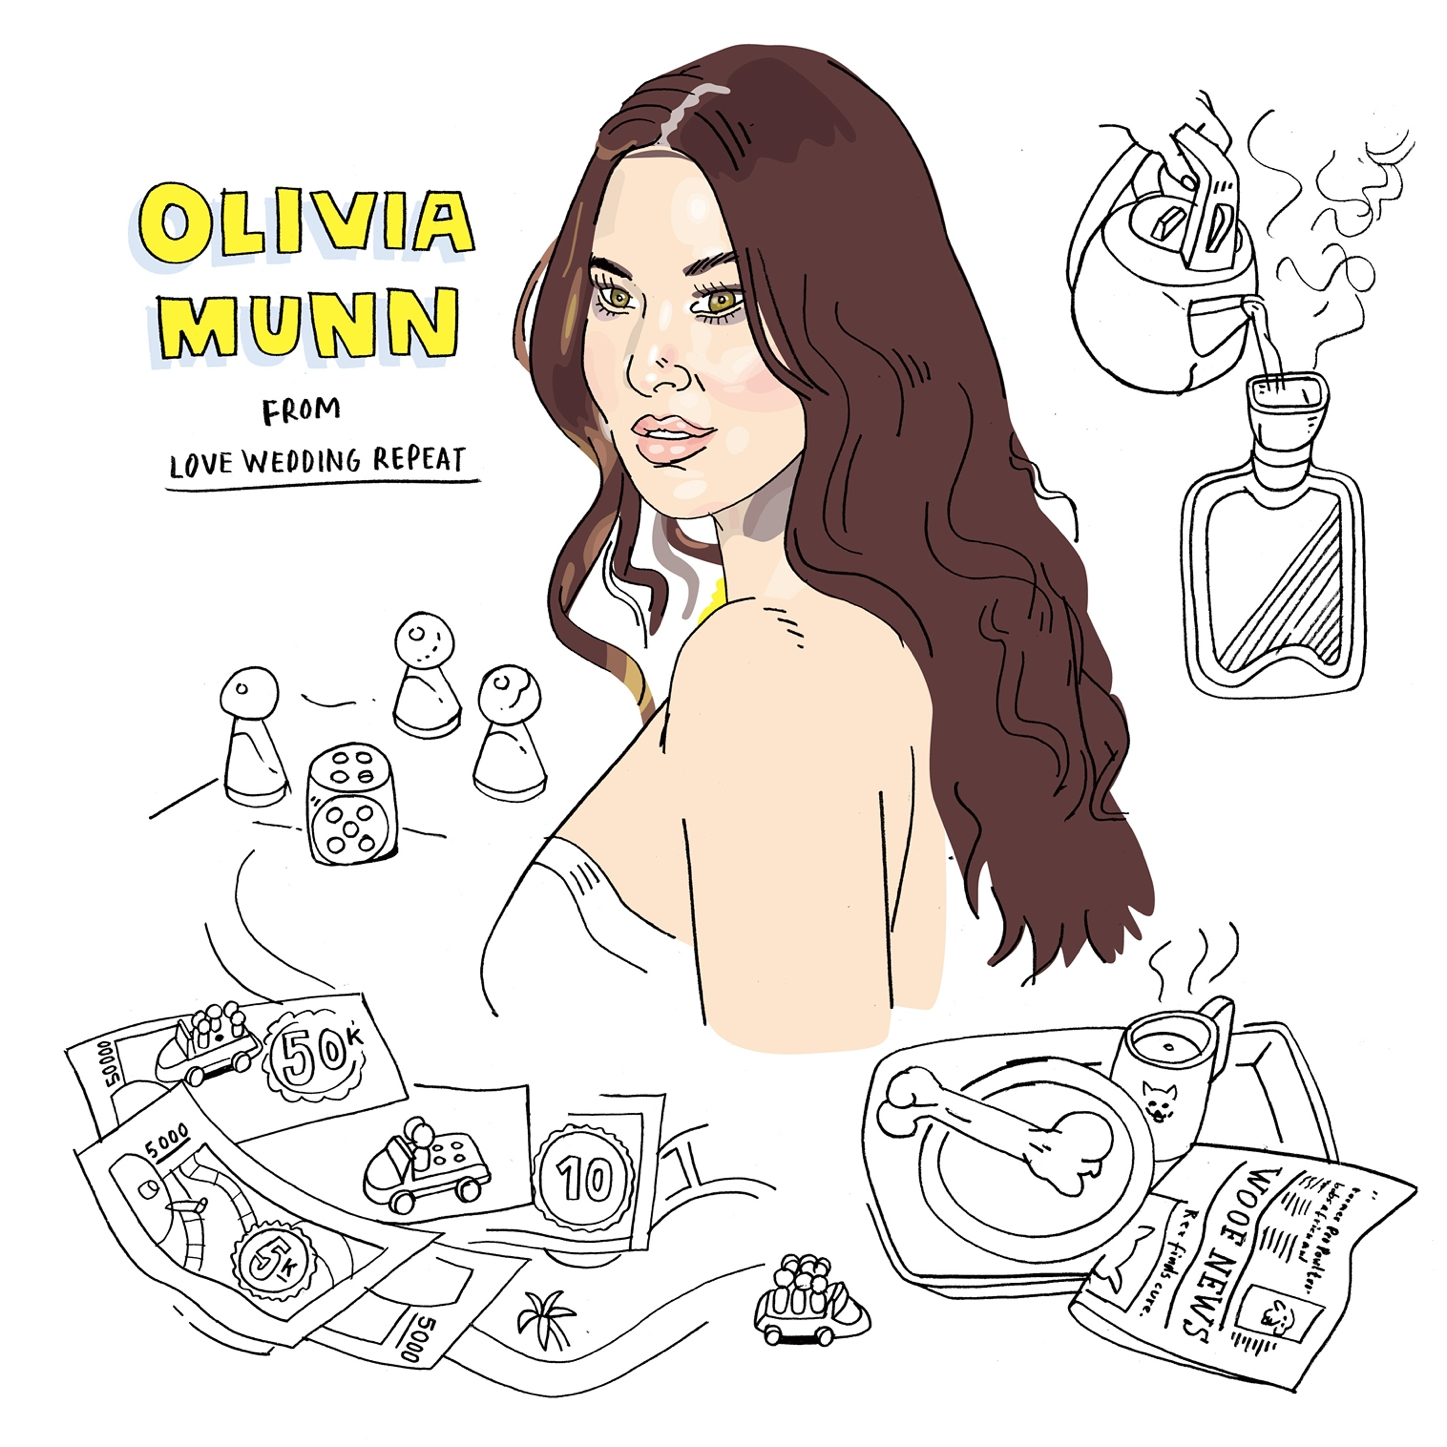 Olivia Munn from Love Wedding Repeat